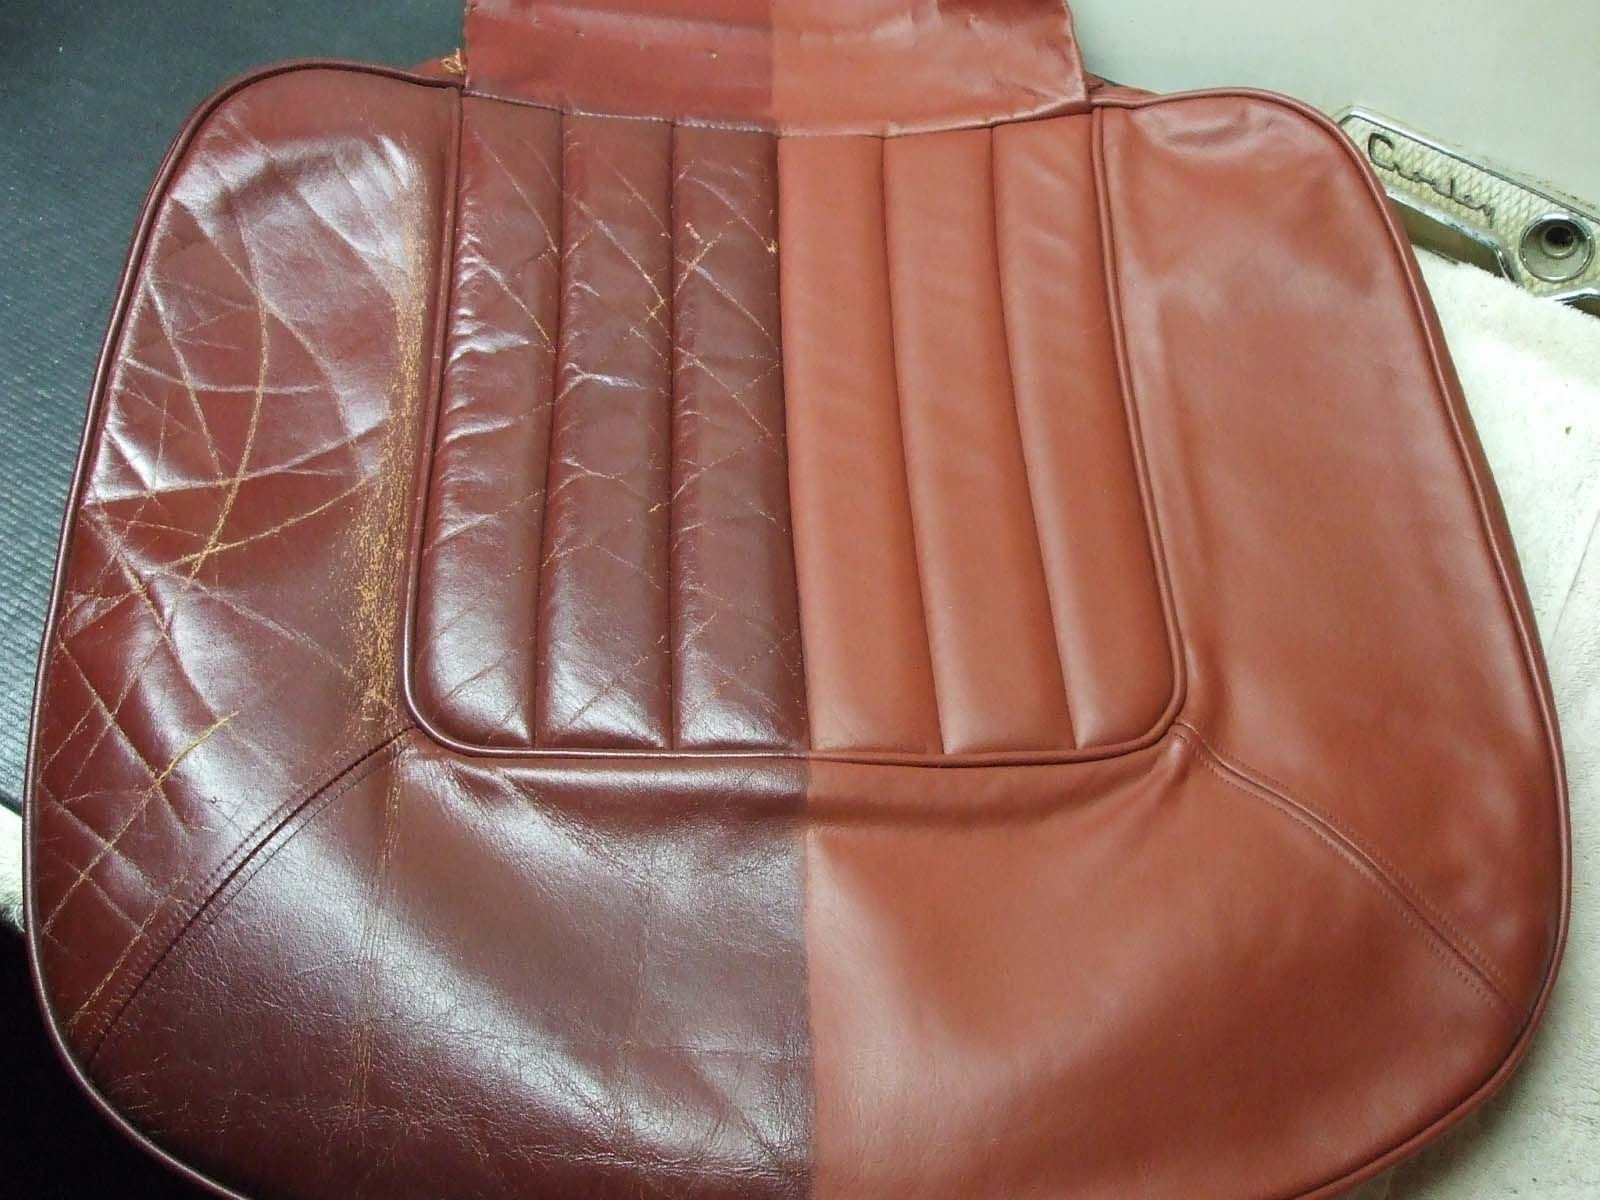 Tufted Sofa Project to restore a classic rolls Royce interior leather seat using the leather touch up kit